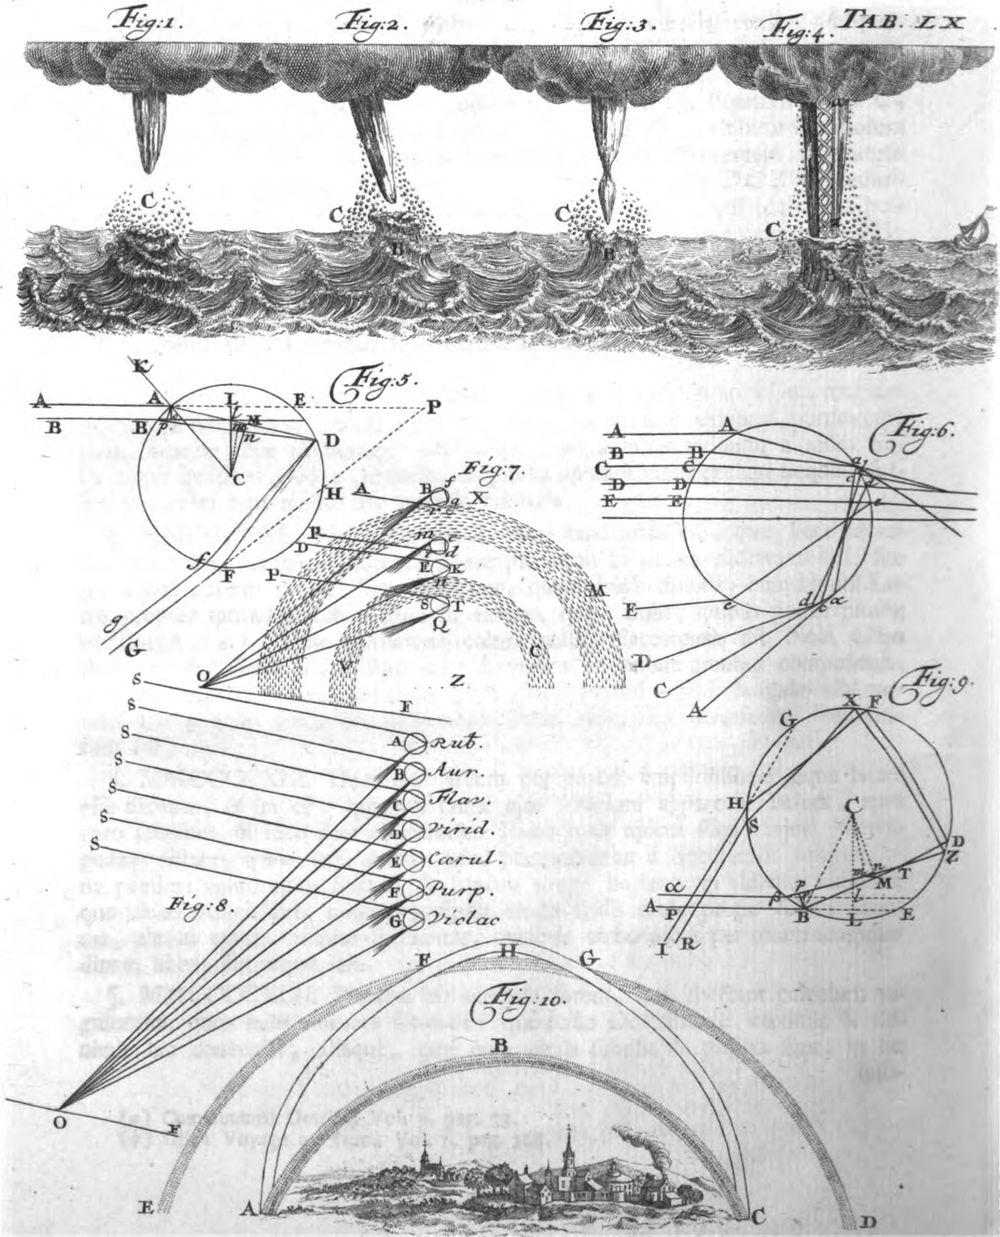 This illustration (Plate XL, p. 517–21) of the evolution of a waterspout appeared in second volume of Introduction to Natural Philosophy (1762) by Pieter van Musschenbroek (1692–1761) a Dutch mathematician and physicist who discovered the principle of the Leyden jar about the same time (1745) as Ewald Georg von Kleist. source: van Musschenbroek, P., 1762: Introductio ad Philosophiam Naturalem, vol. II, Lugduni Batavorum, Apud Sam. et Joh. Luchtmans, pp. 655. via Google Books